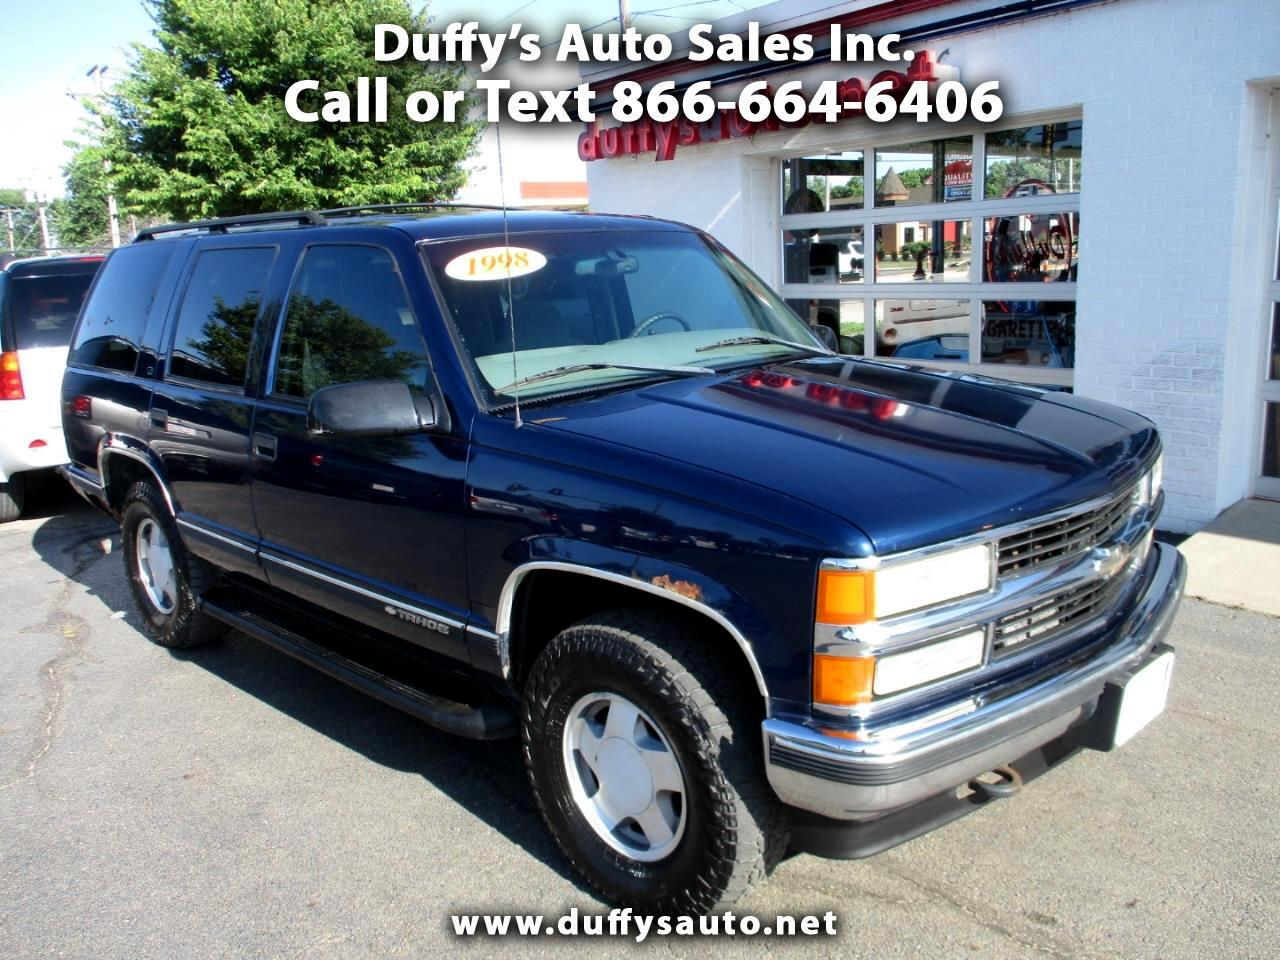 1998 Chevrolet Tahoe 1500 4dr 4WD